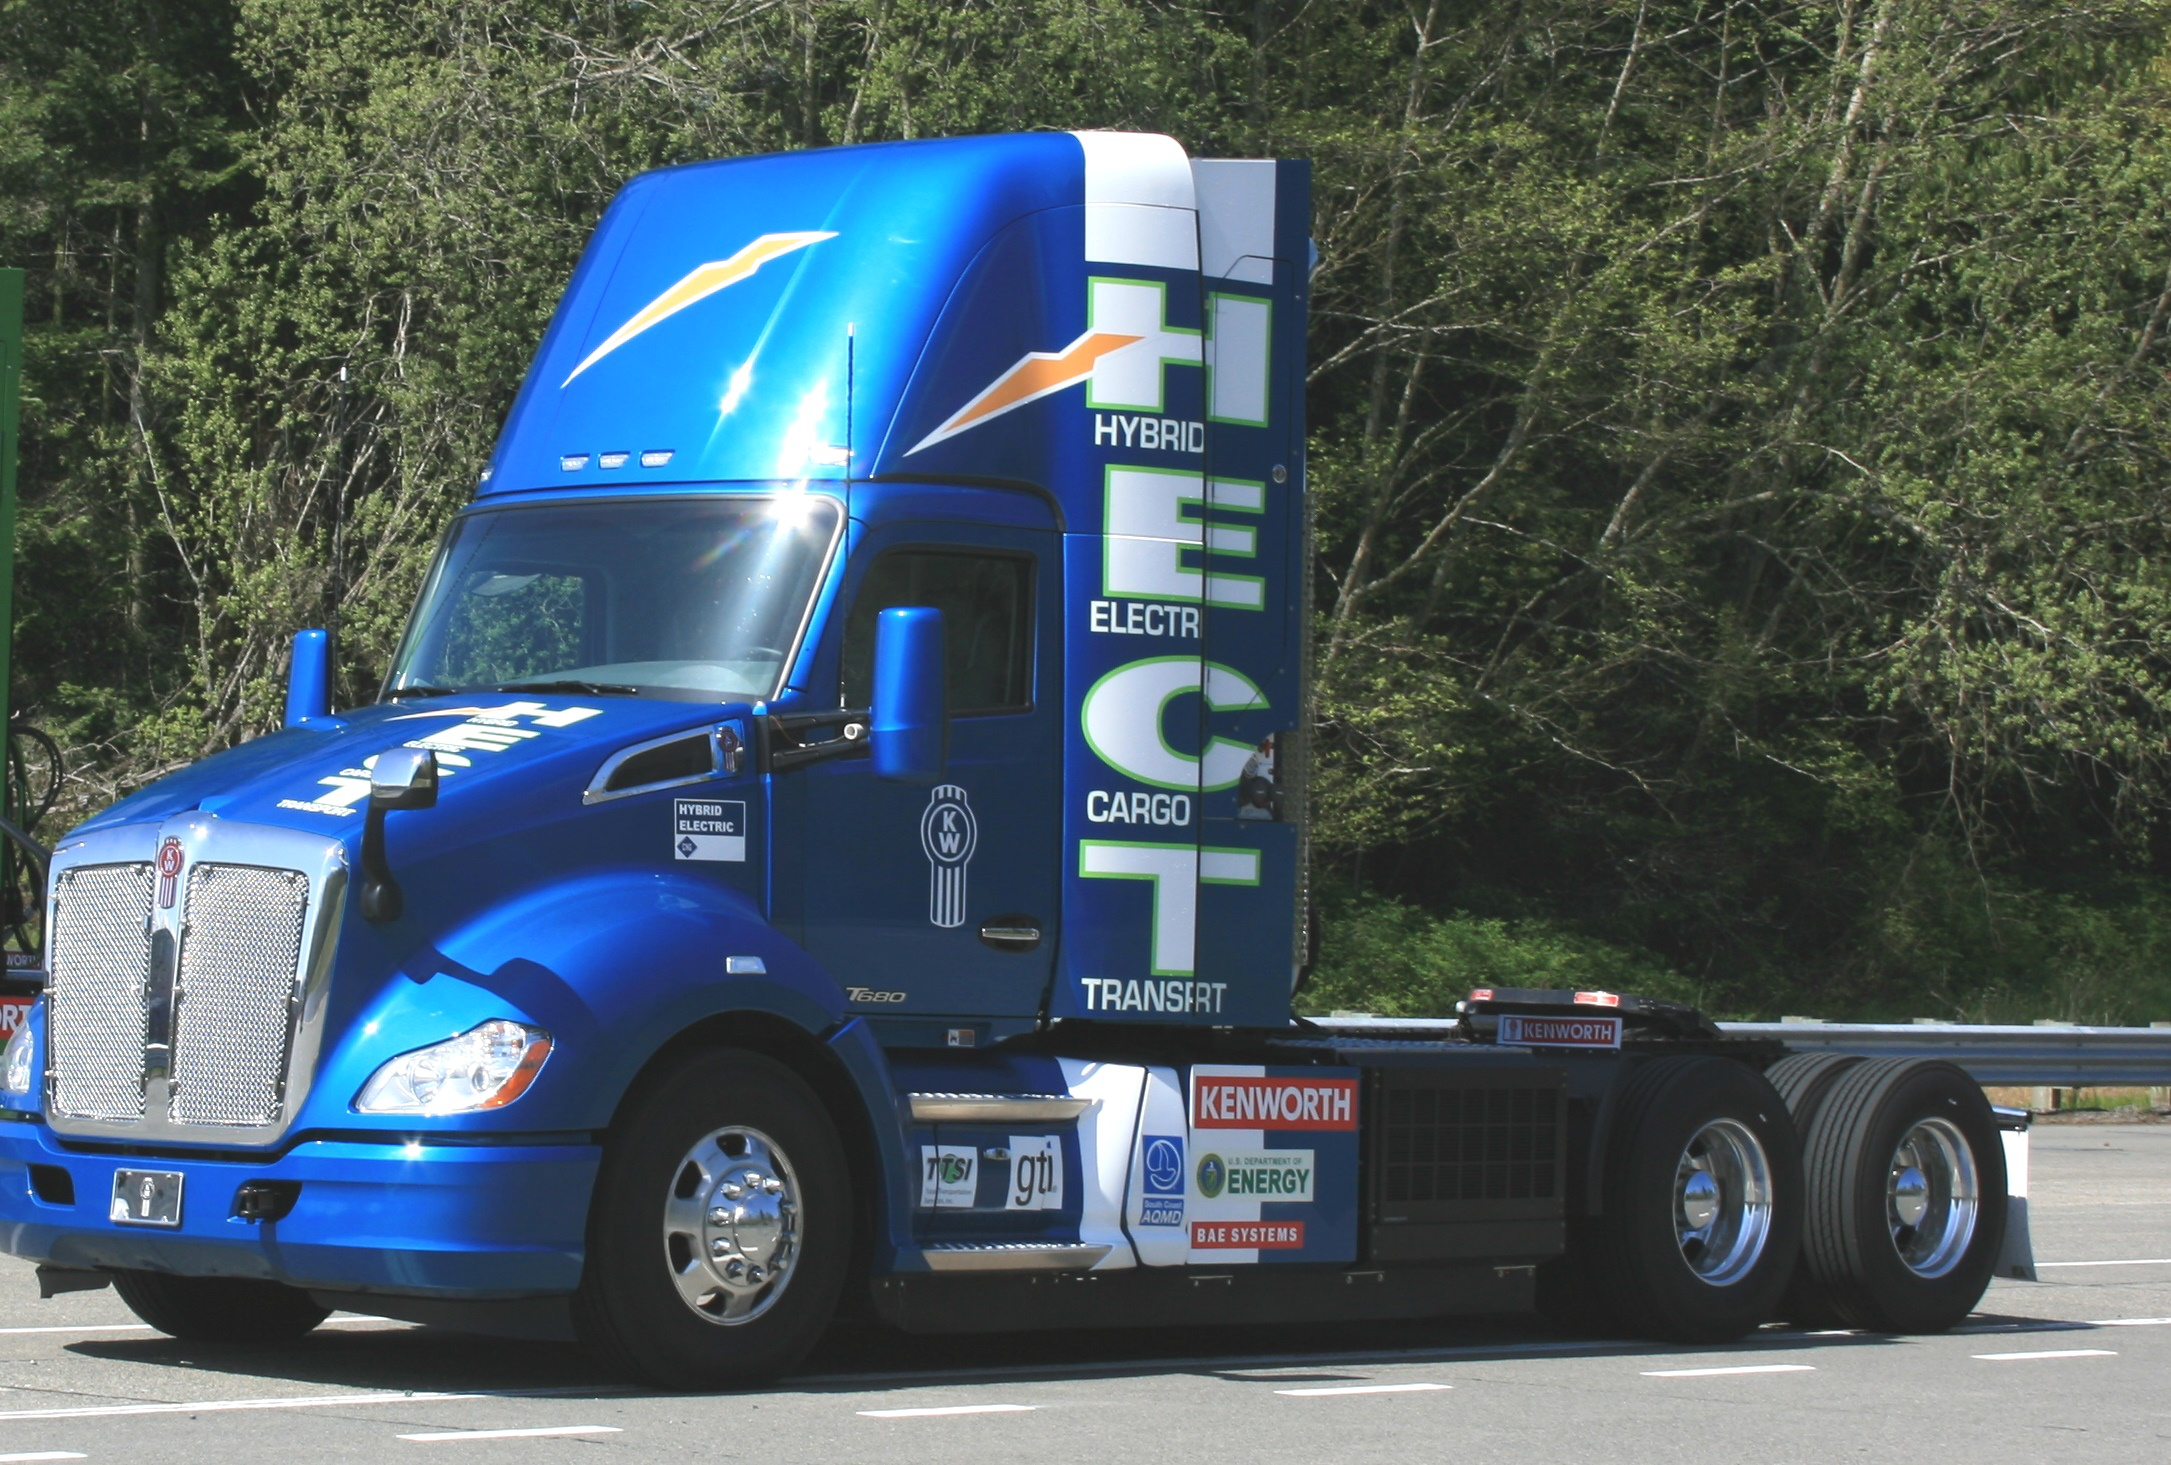 Kenworth: New CNG hybrid T680 will perform as well or better than